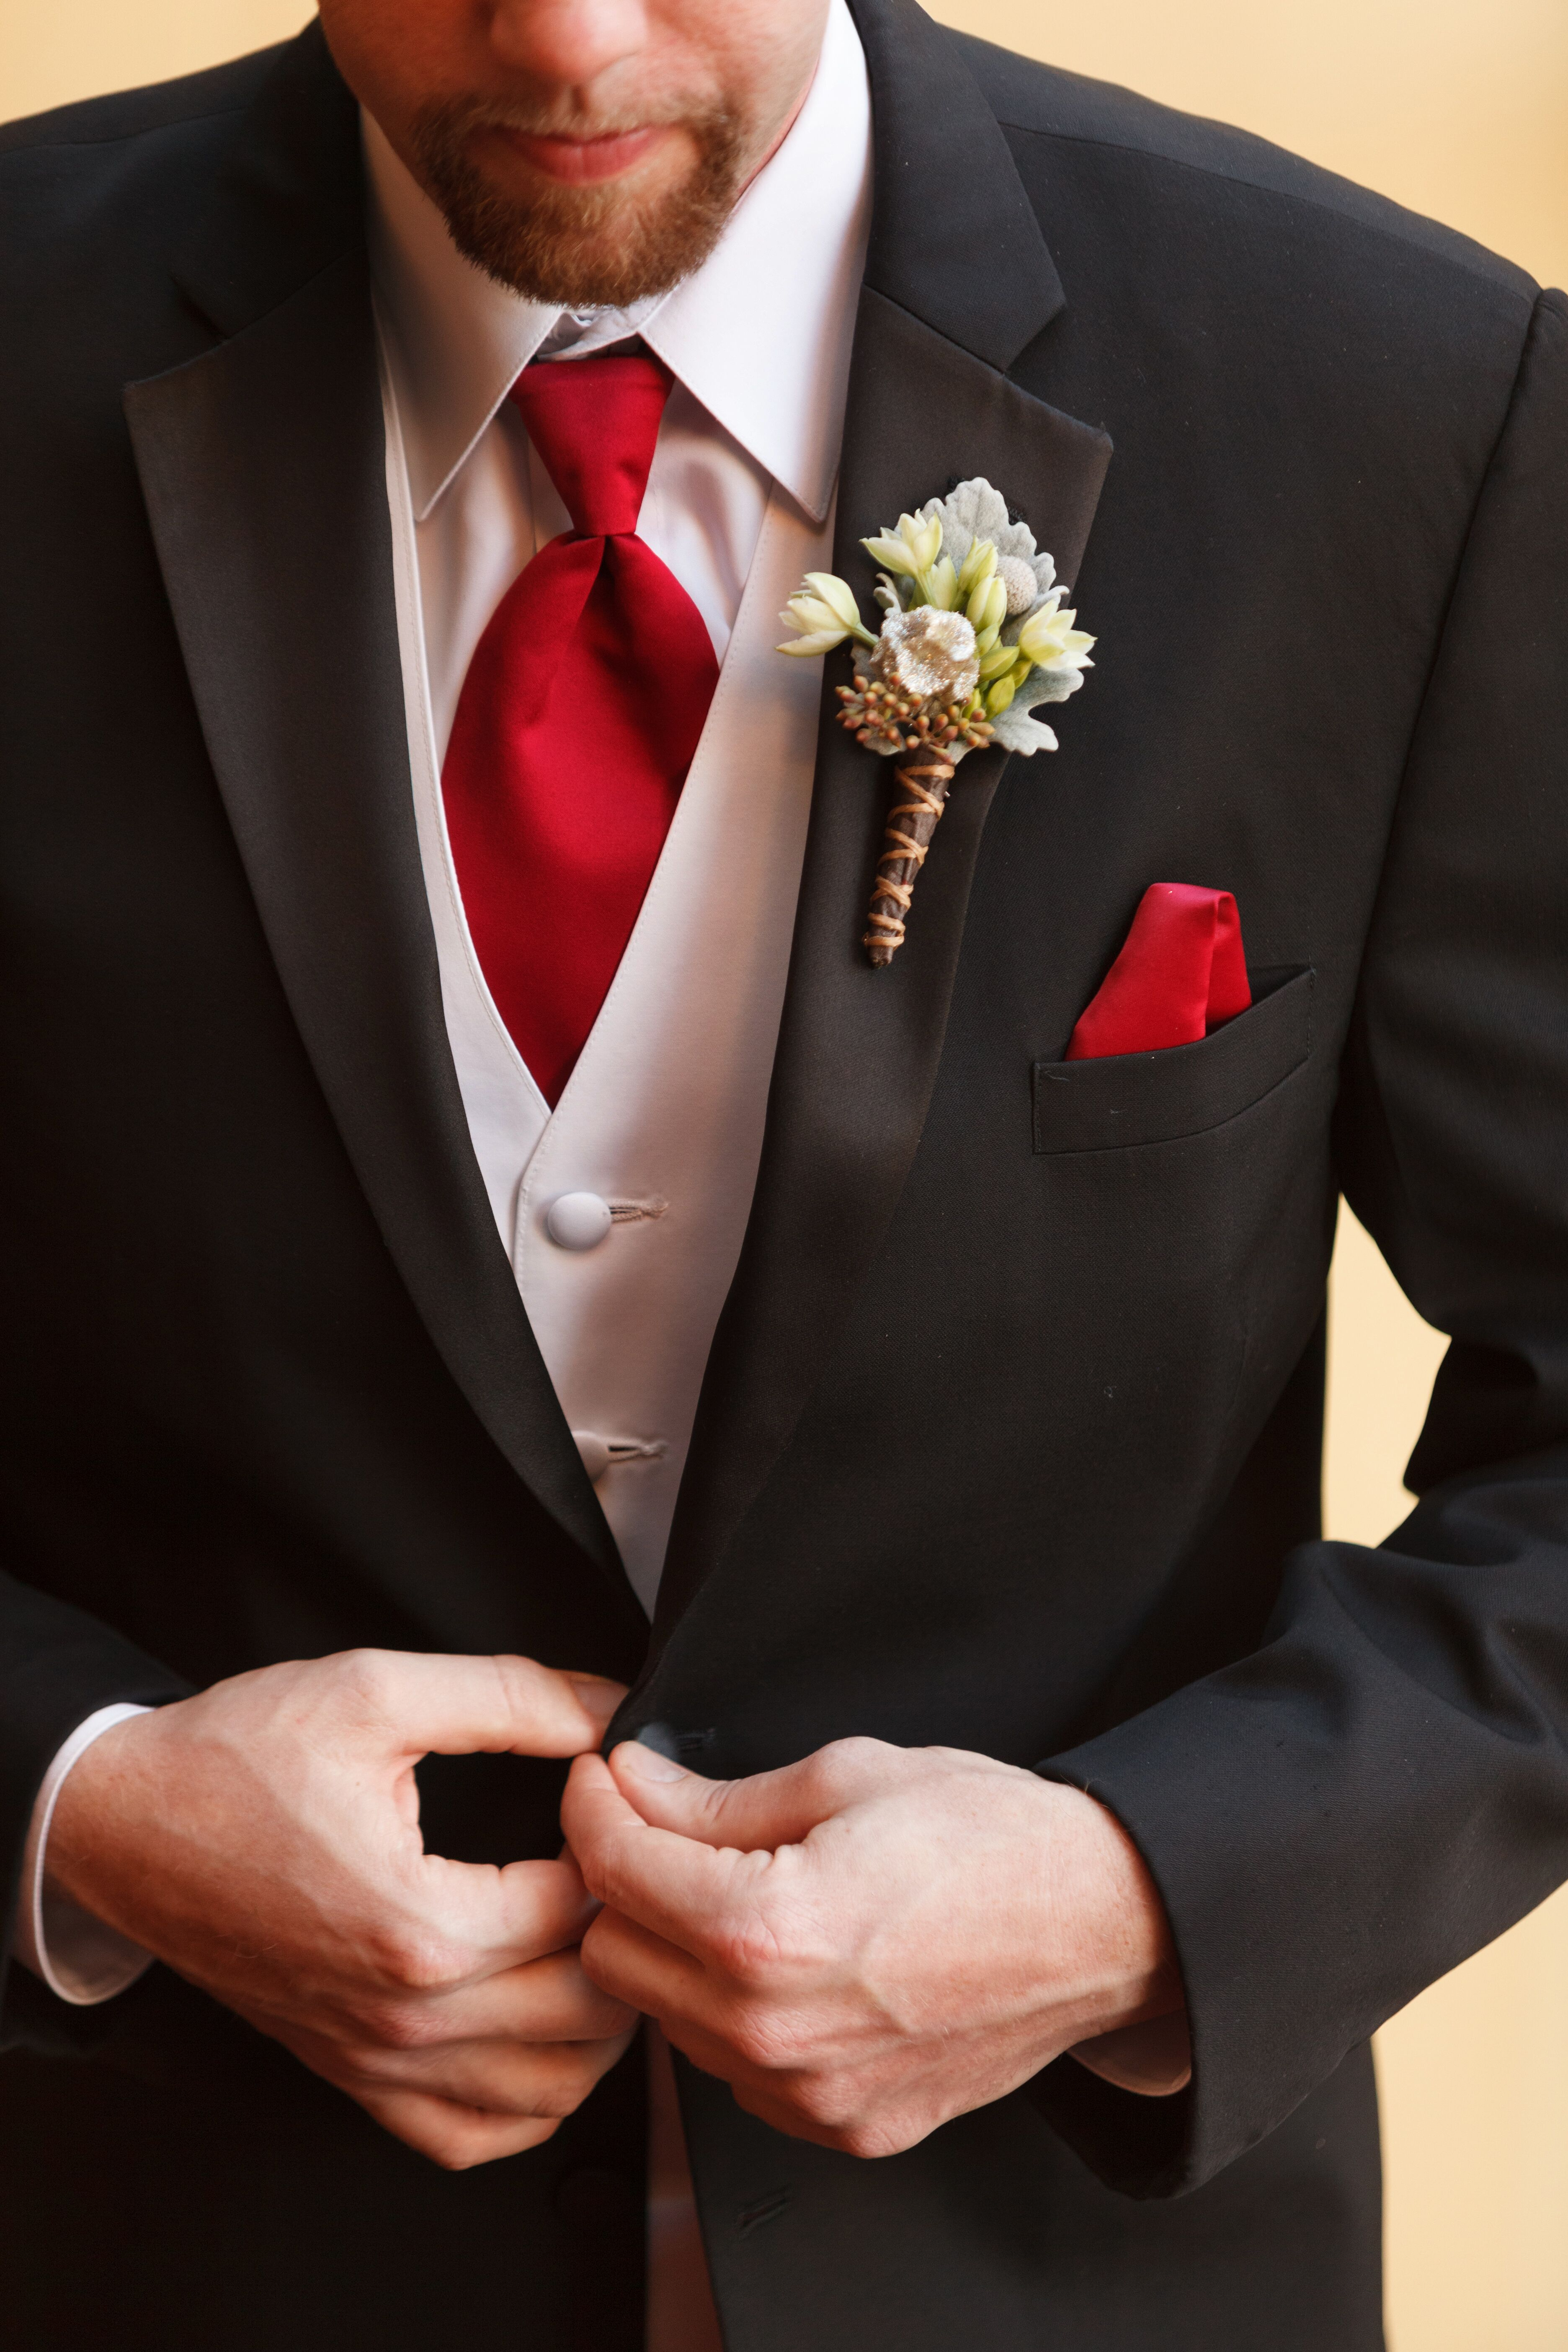 Black And Red Mobile Wallpapers: Black Tuxedo, White Vest And Red Tie